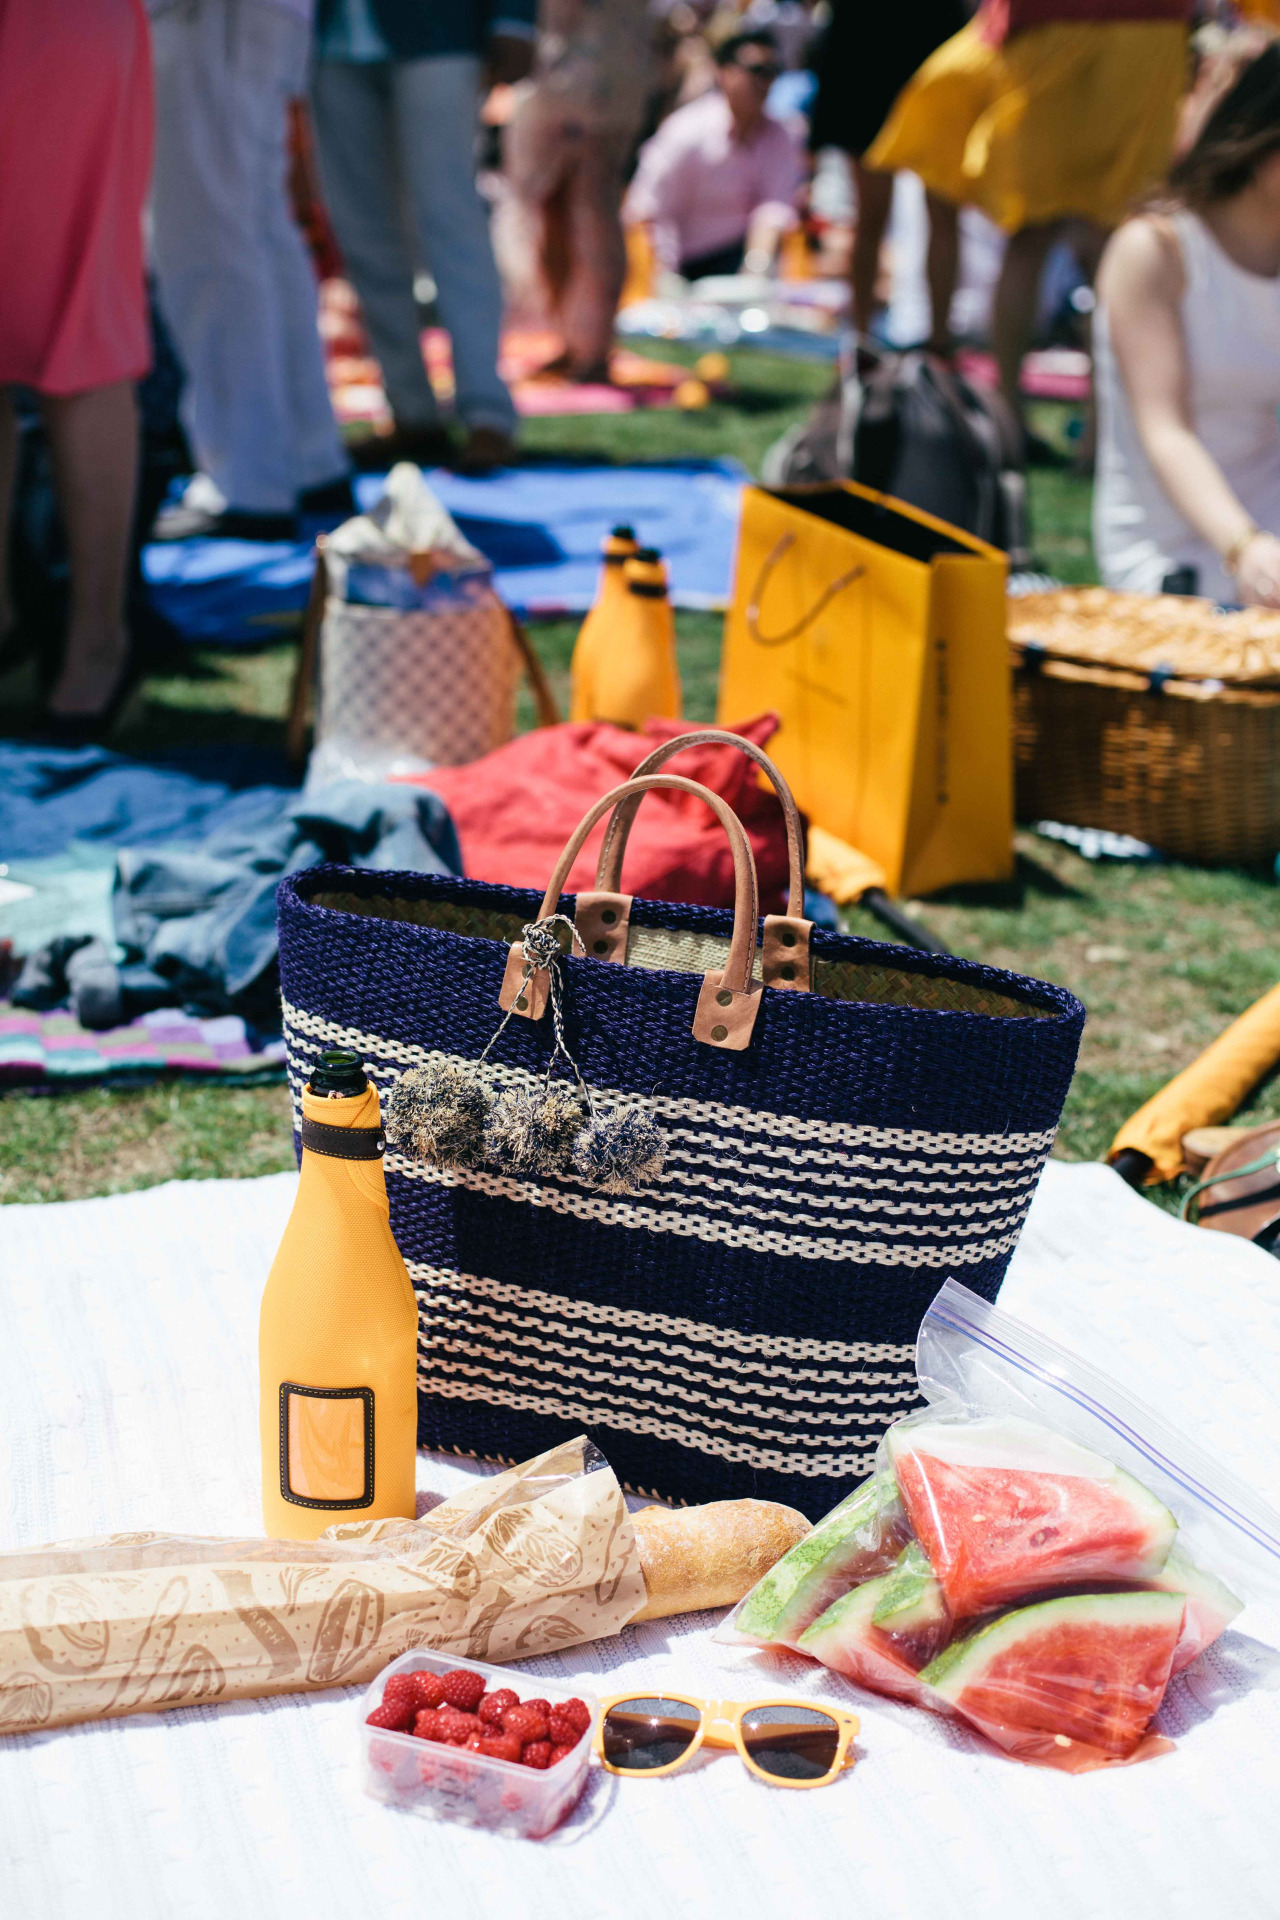 Scenes from the Veuve Cliquot Polo Classic. New York - May 2014.